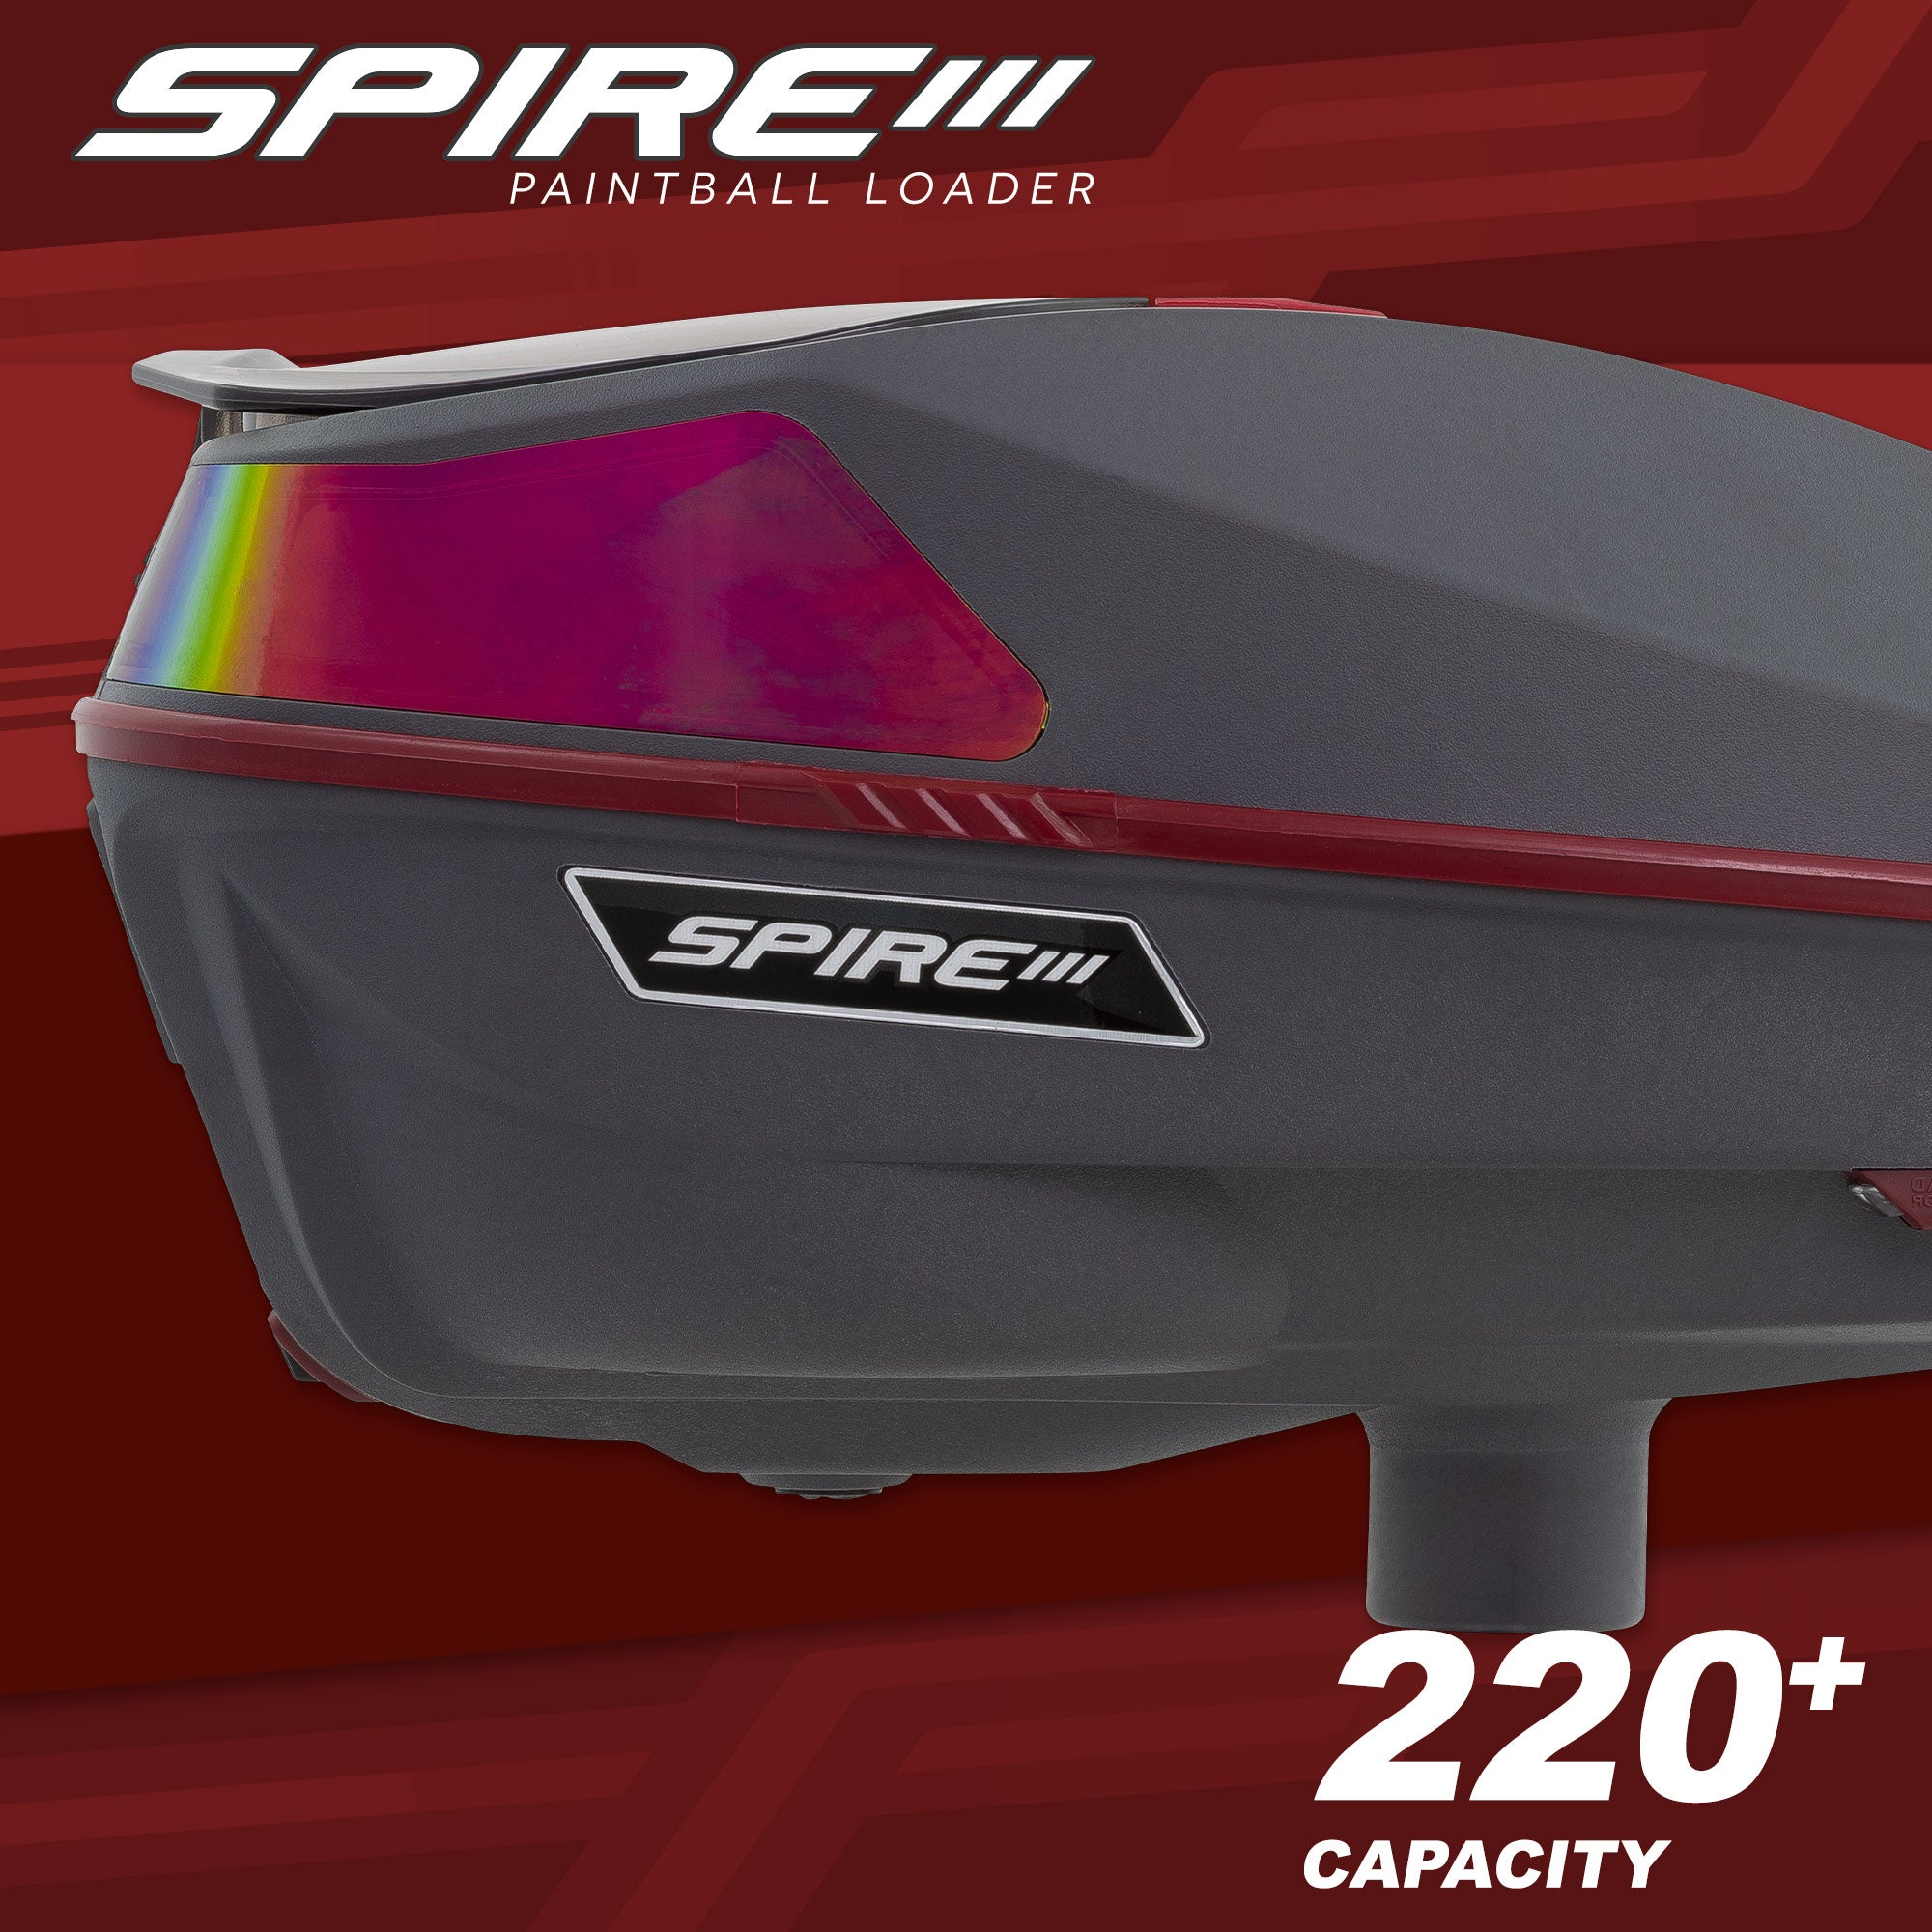 Virtue Spire 3 Paintball Loader - Fire